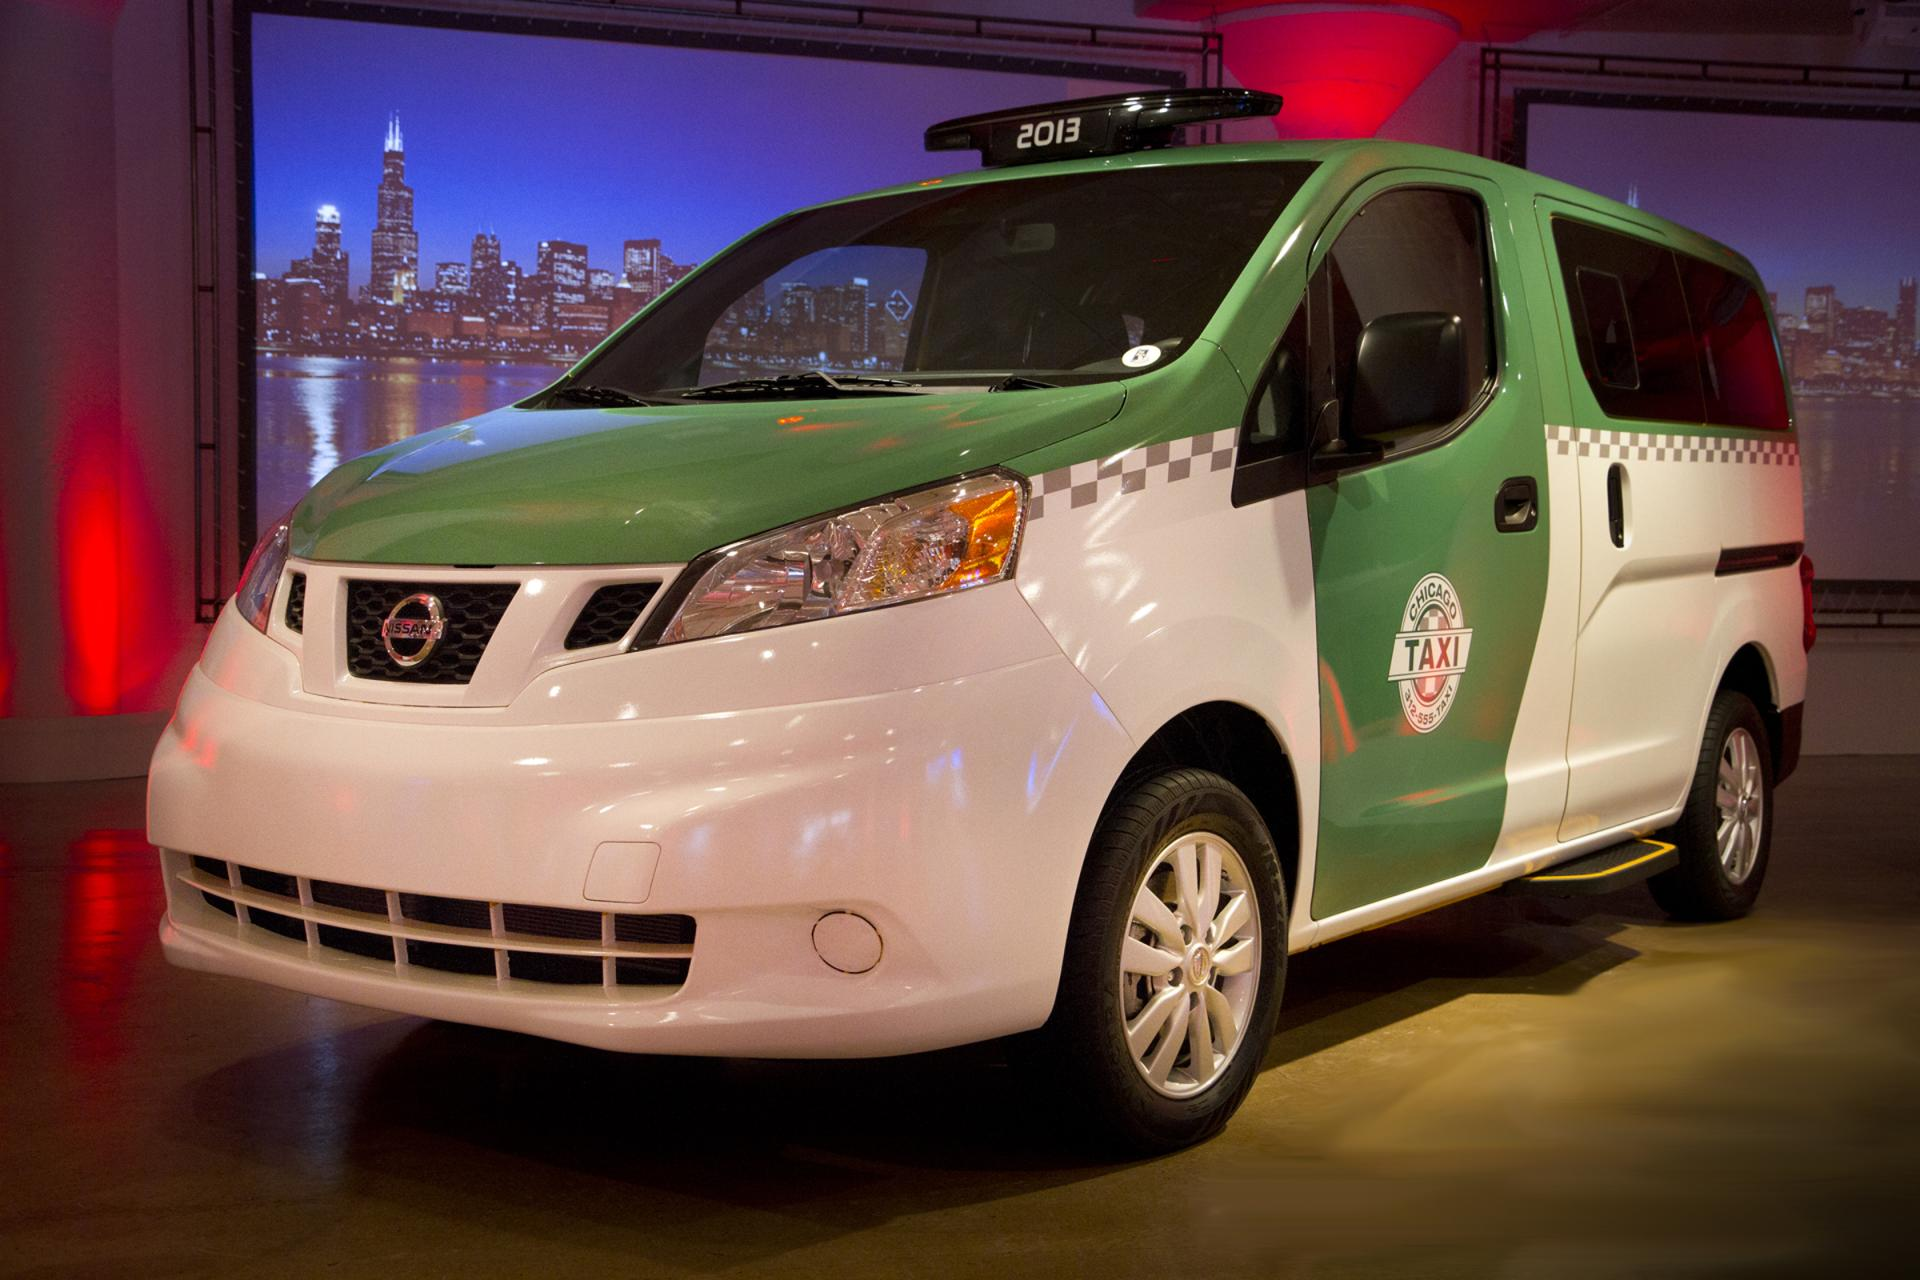 2014 nissan nv200 chicago taxi technical specifications and data engine dimensions and. Black Bedroom Furniture Sets. Home Design Ideas